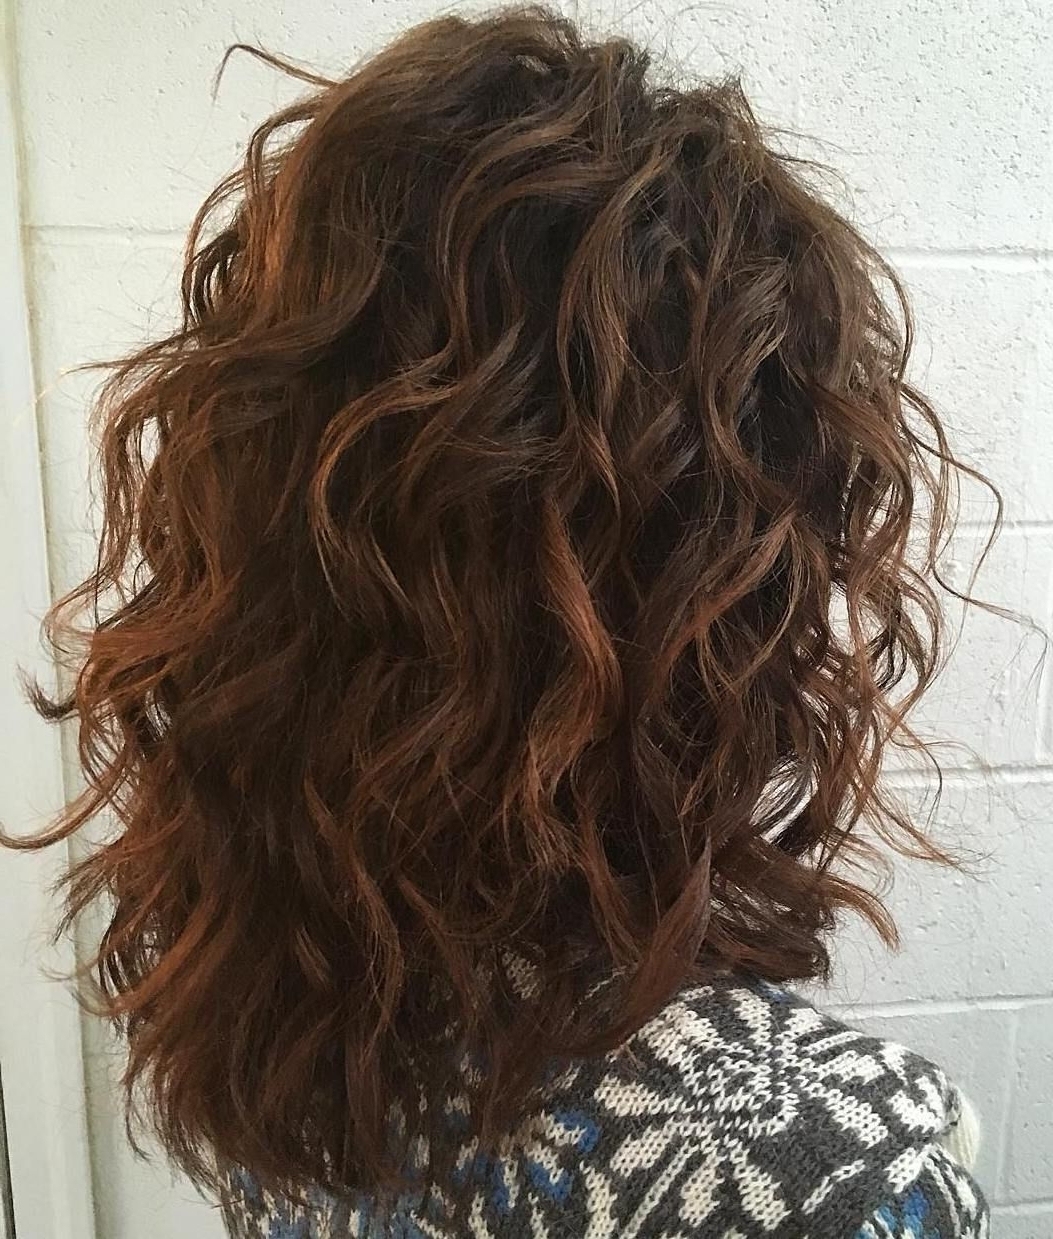 Pin On Cute Long Hairstyles 40+ Stylish Hairstyles For Medium Wavy Layered Hair